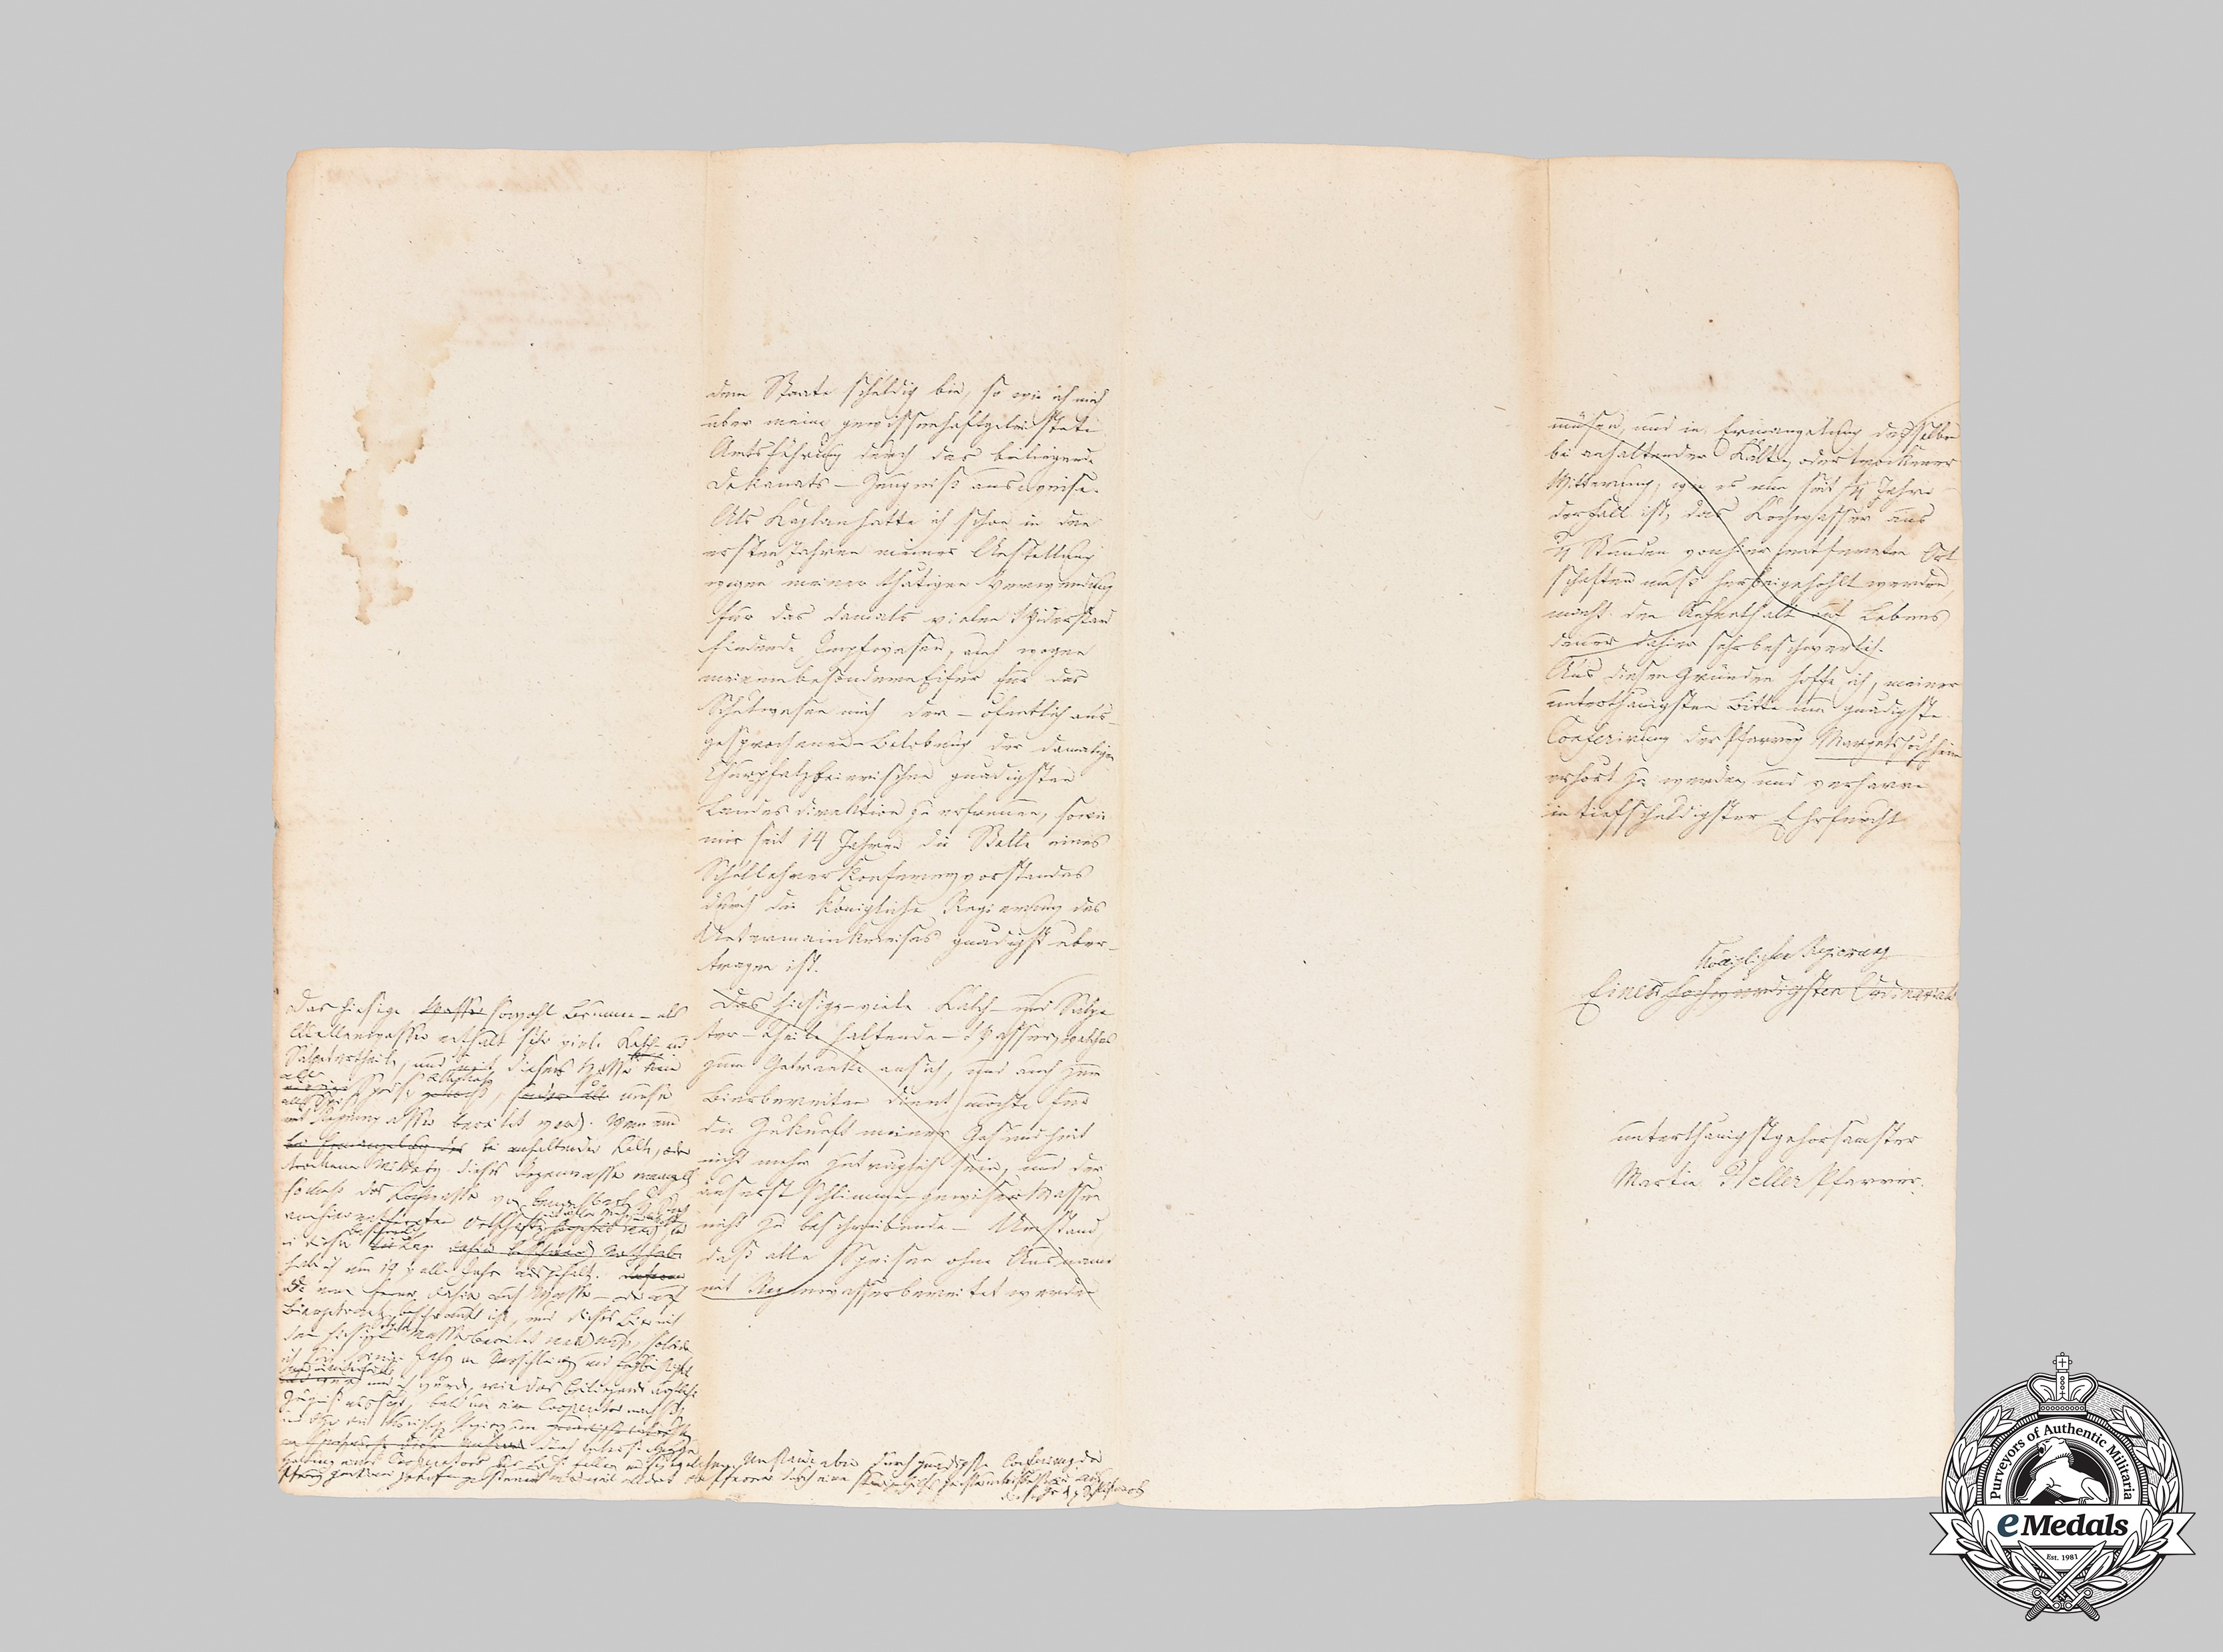 Bavaria, Kingdom. Two Letters from the Royal Bavarian Regiment, c.1830